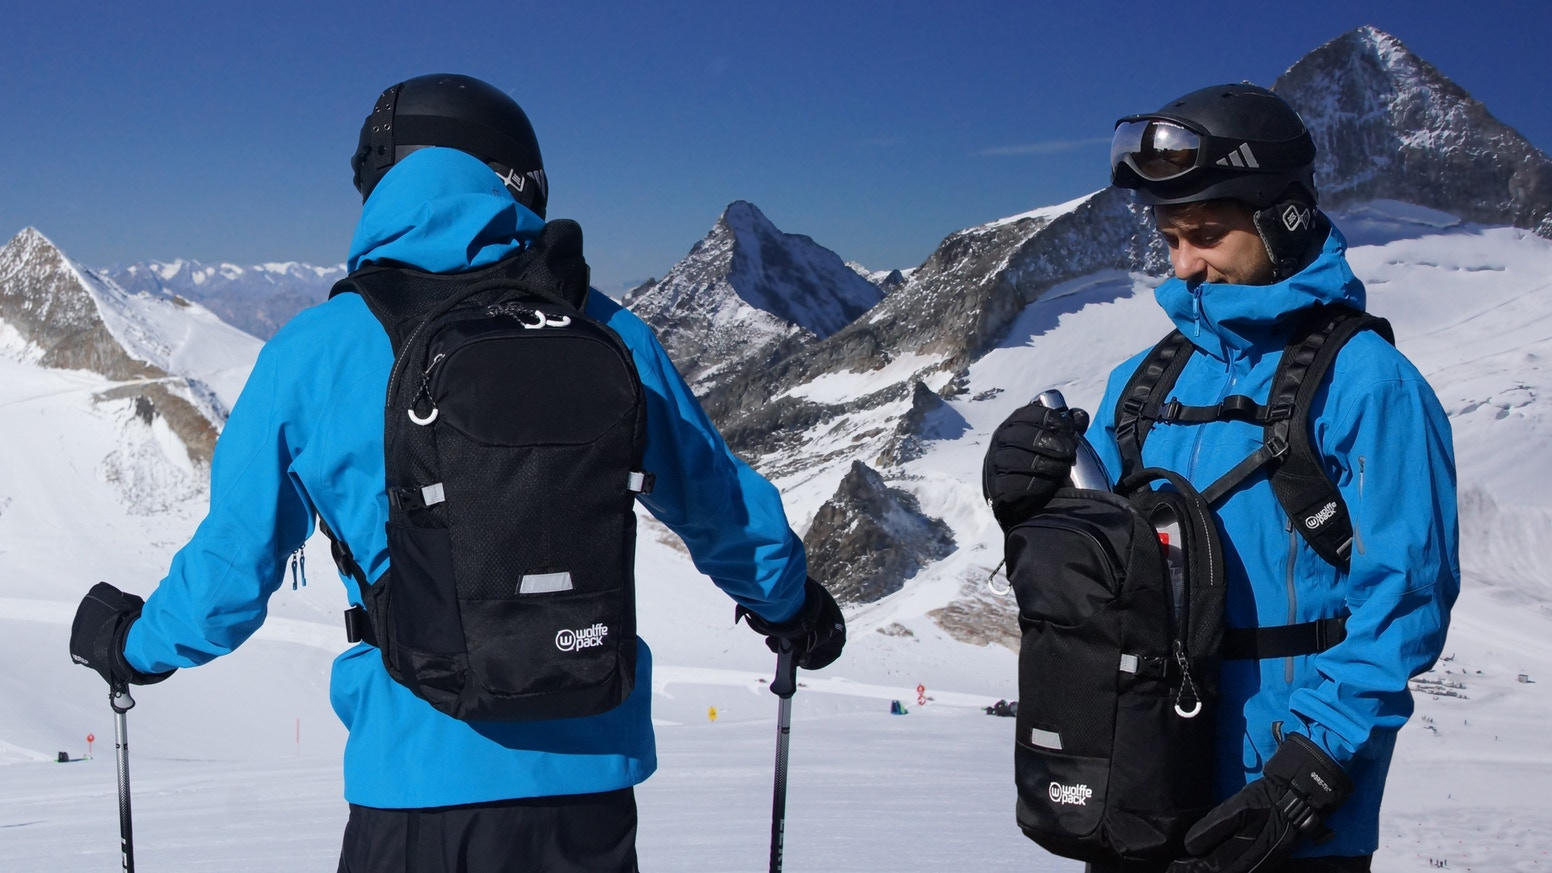 Wolffepack Summit is the ultimate backpack for snowsports and active access. Swing your bag round to the front without unstrapping.